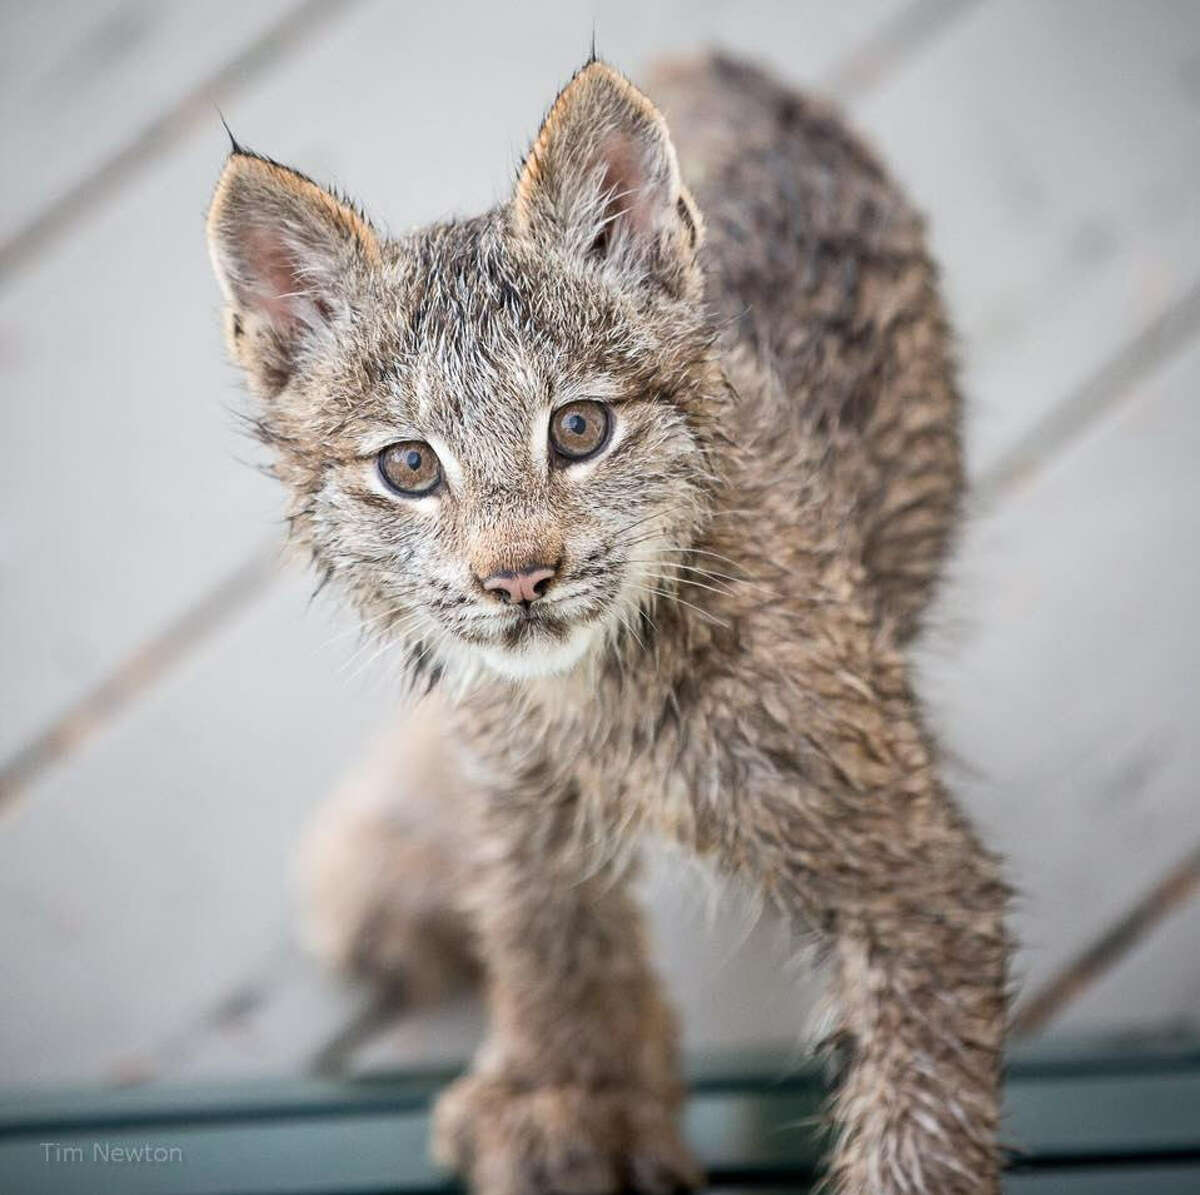 Tim Newton of Anchorage, Alaska captured photos of a family of lynx cats who played on his porch in September 2017.